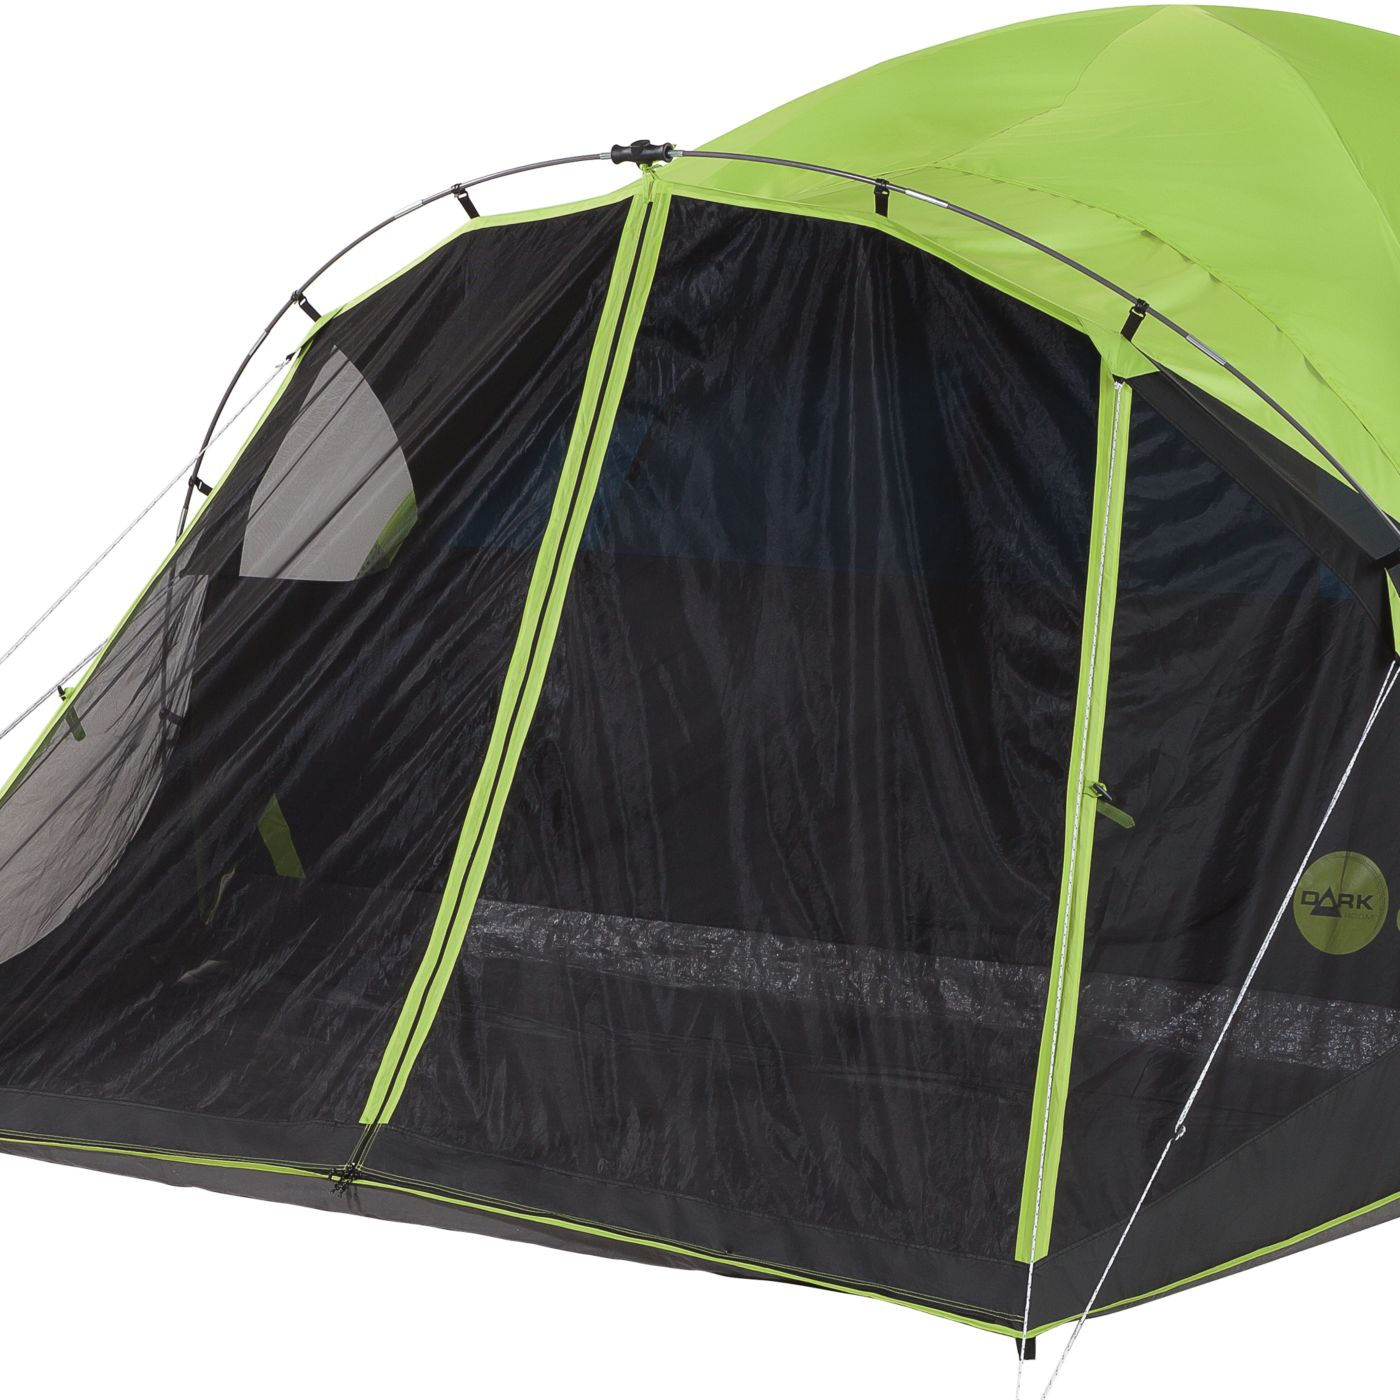 ... Carlsbad™ Fast Pitch™ 6-Person Dark Room Tent with Screen ...  sc 1 st  Coleman & Dome Tents | 6 Person Tent | Coleman